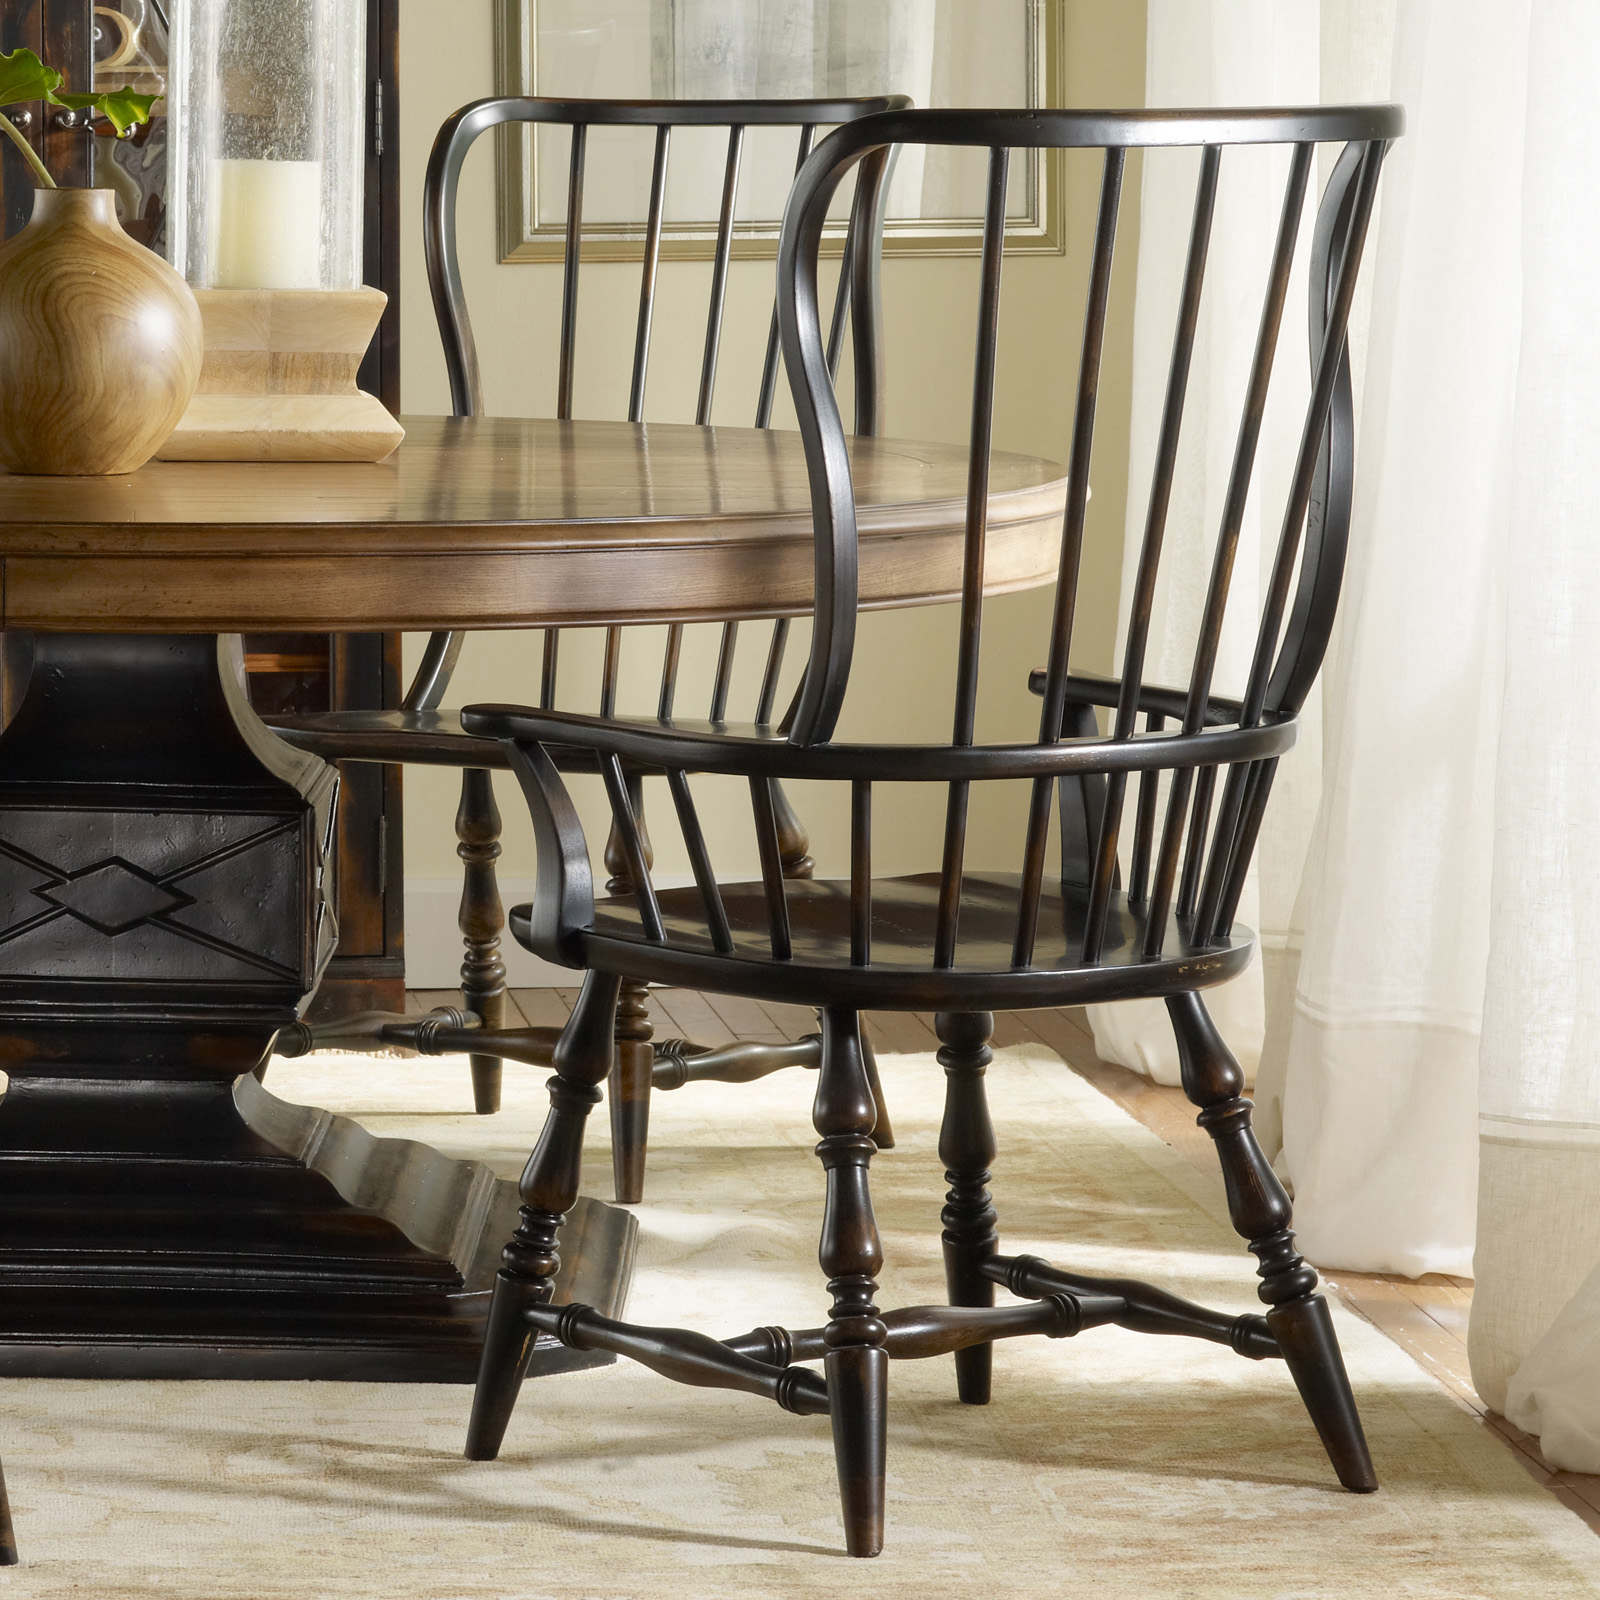 Black farmhouse chairs - Hooker Furniture Sanctuary Spindle Back Dining Arm Chair Set Of 2 Dining Chairs At Hayneedle